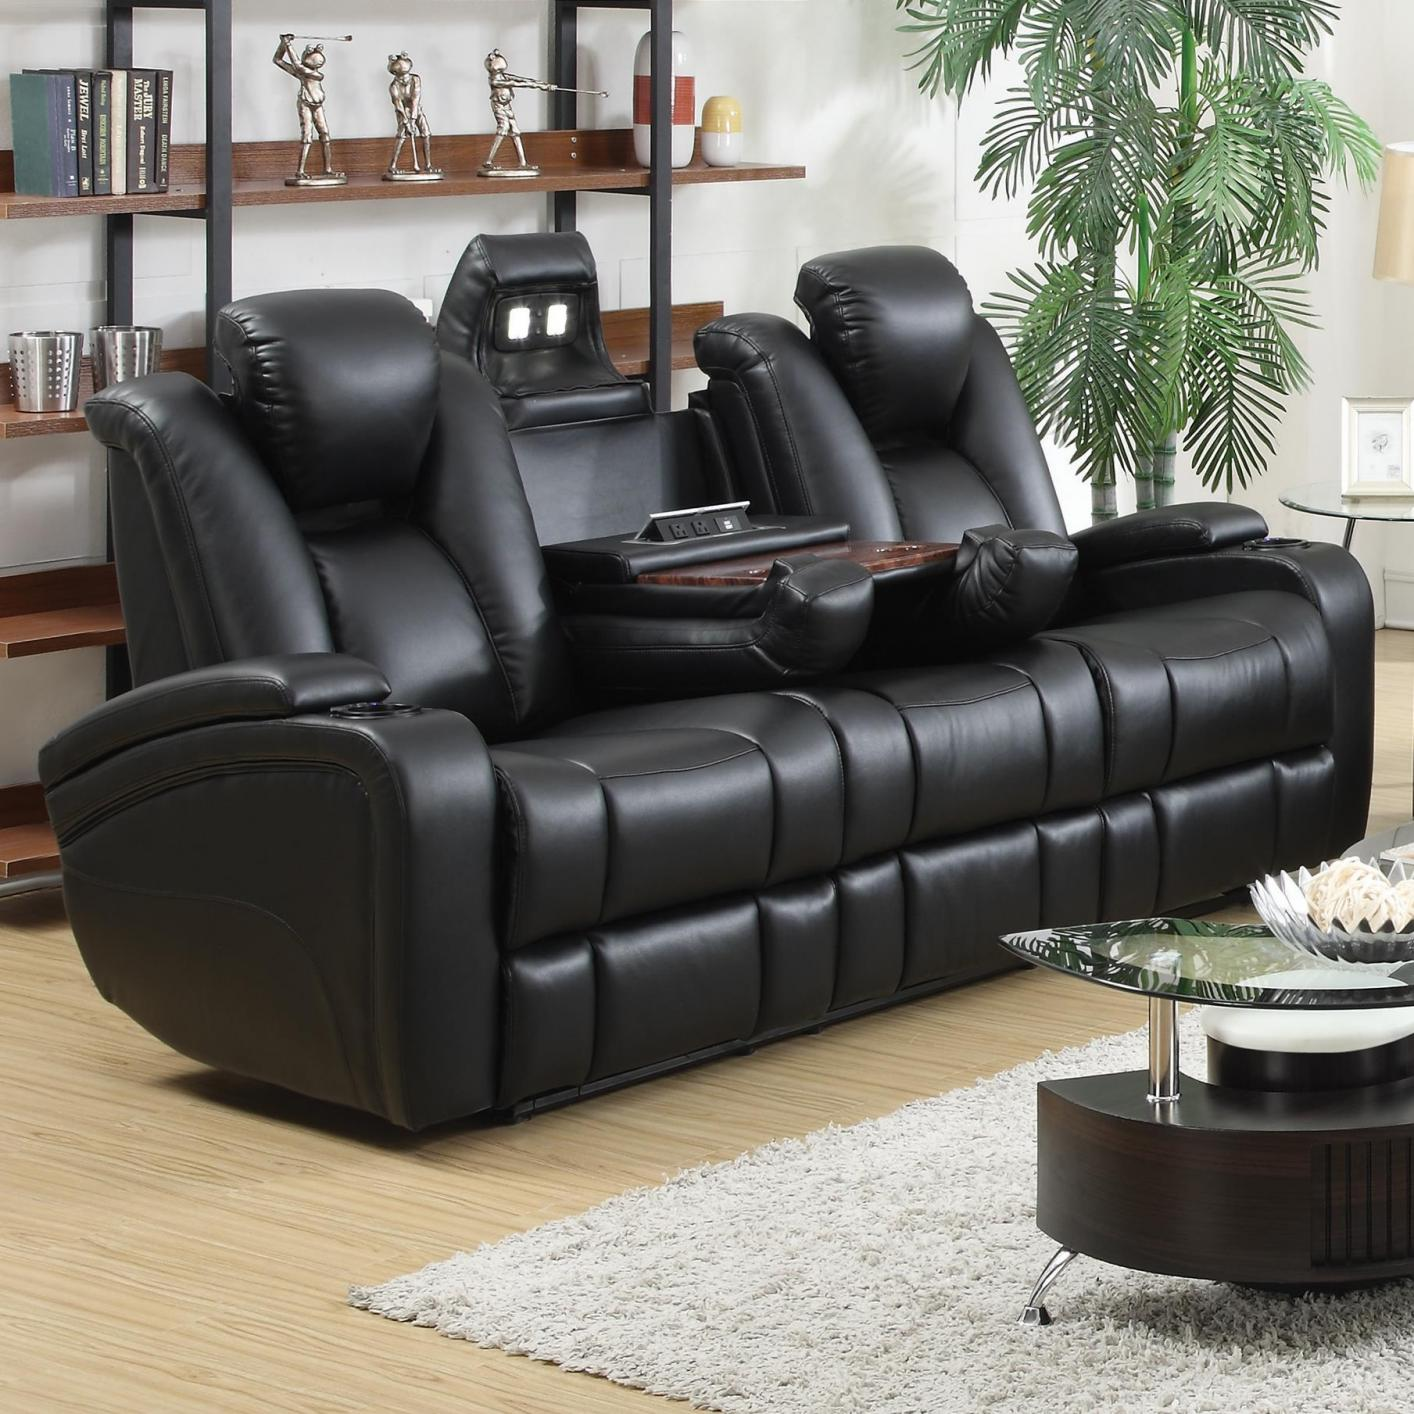 black leather reclining sofa. Black Leather Power Reclining Sofa